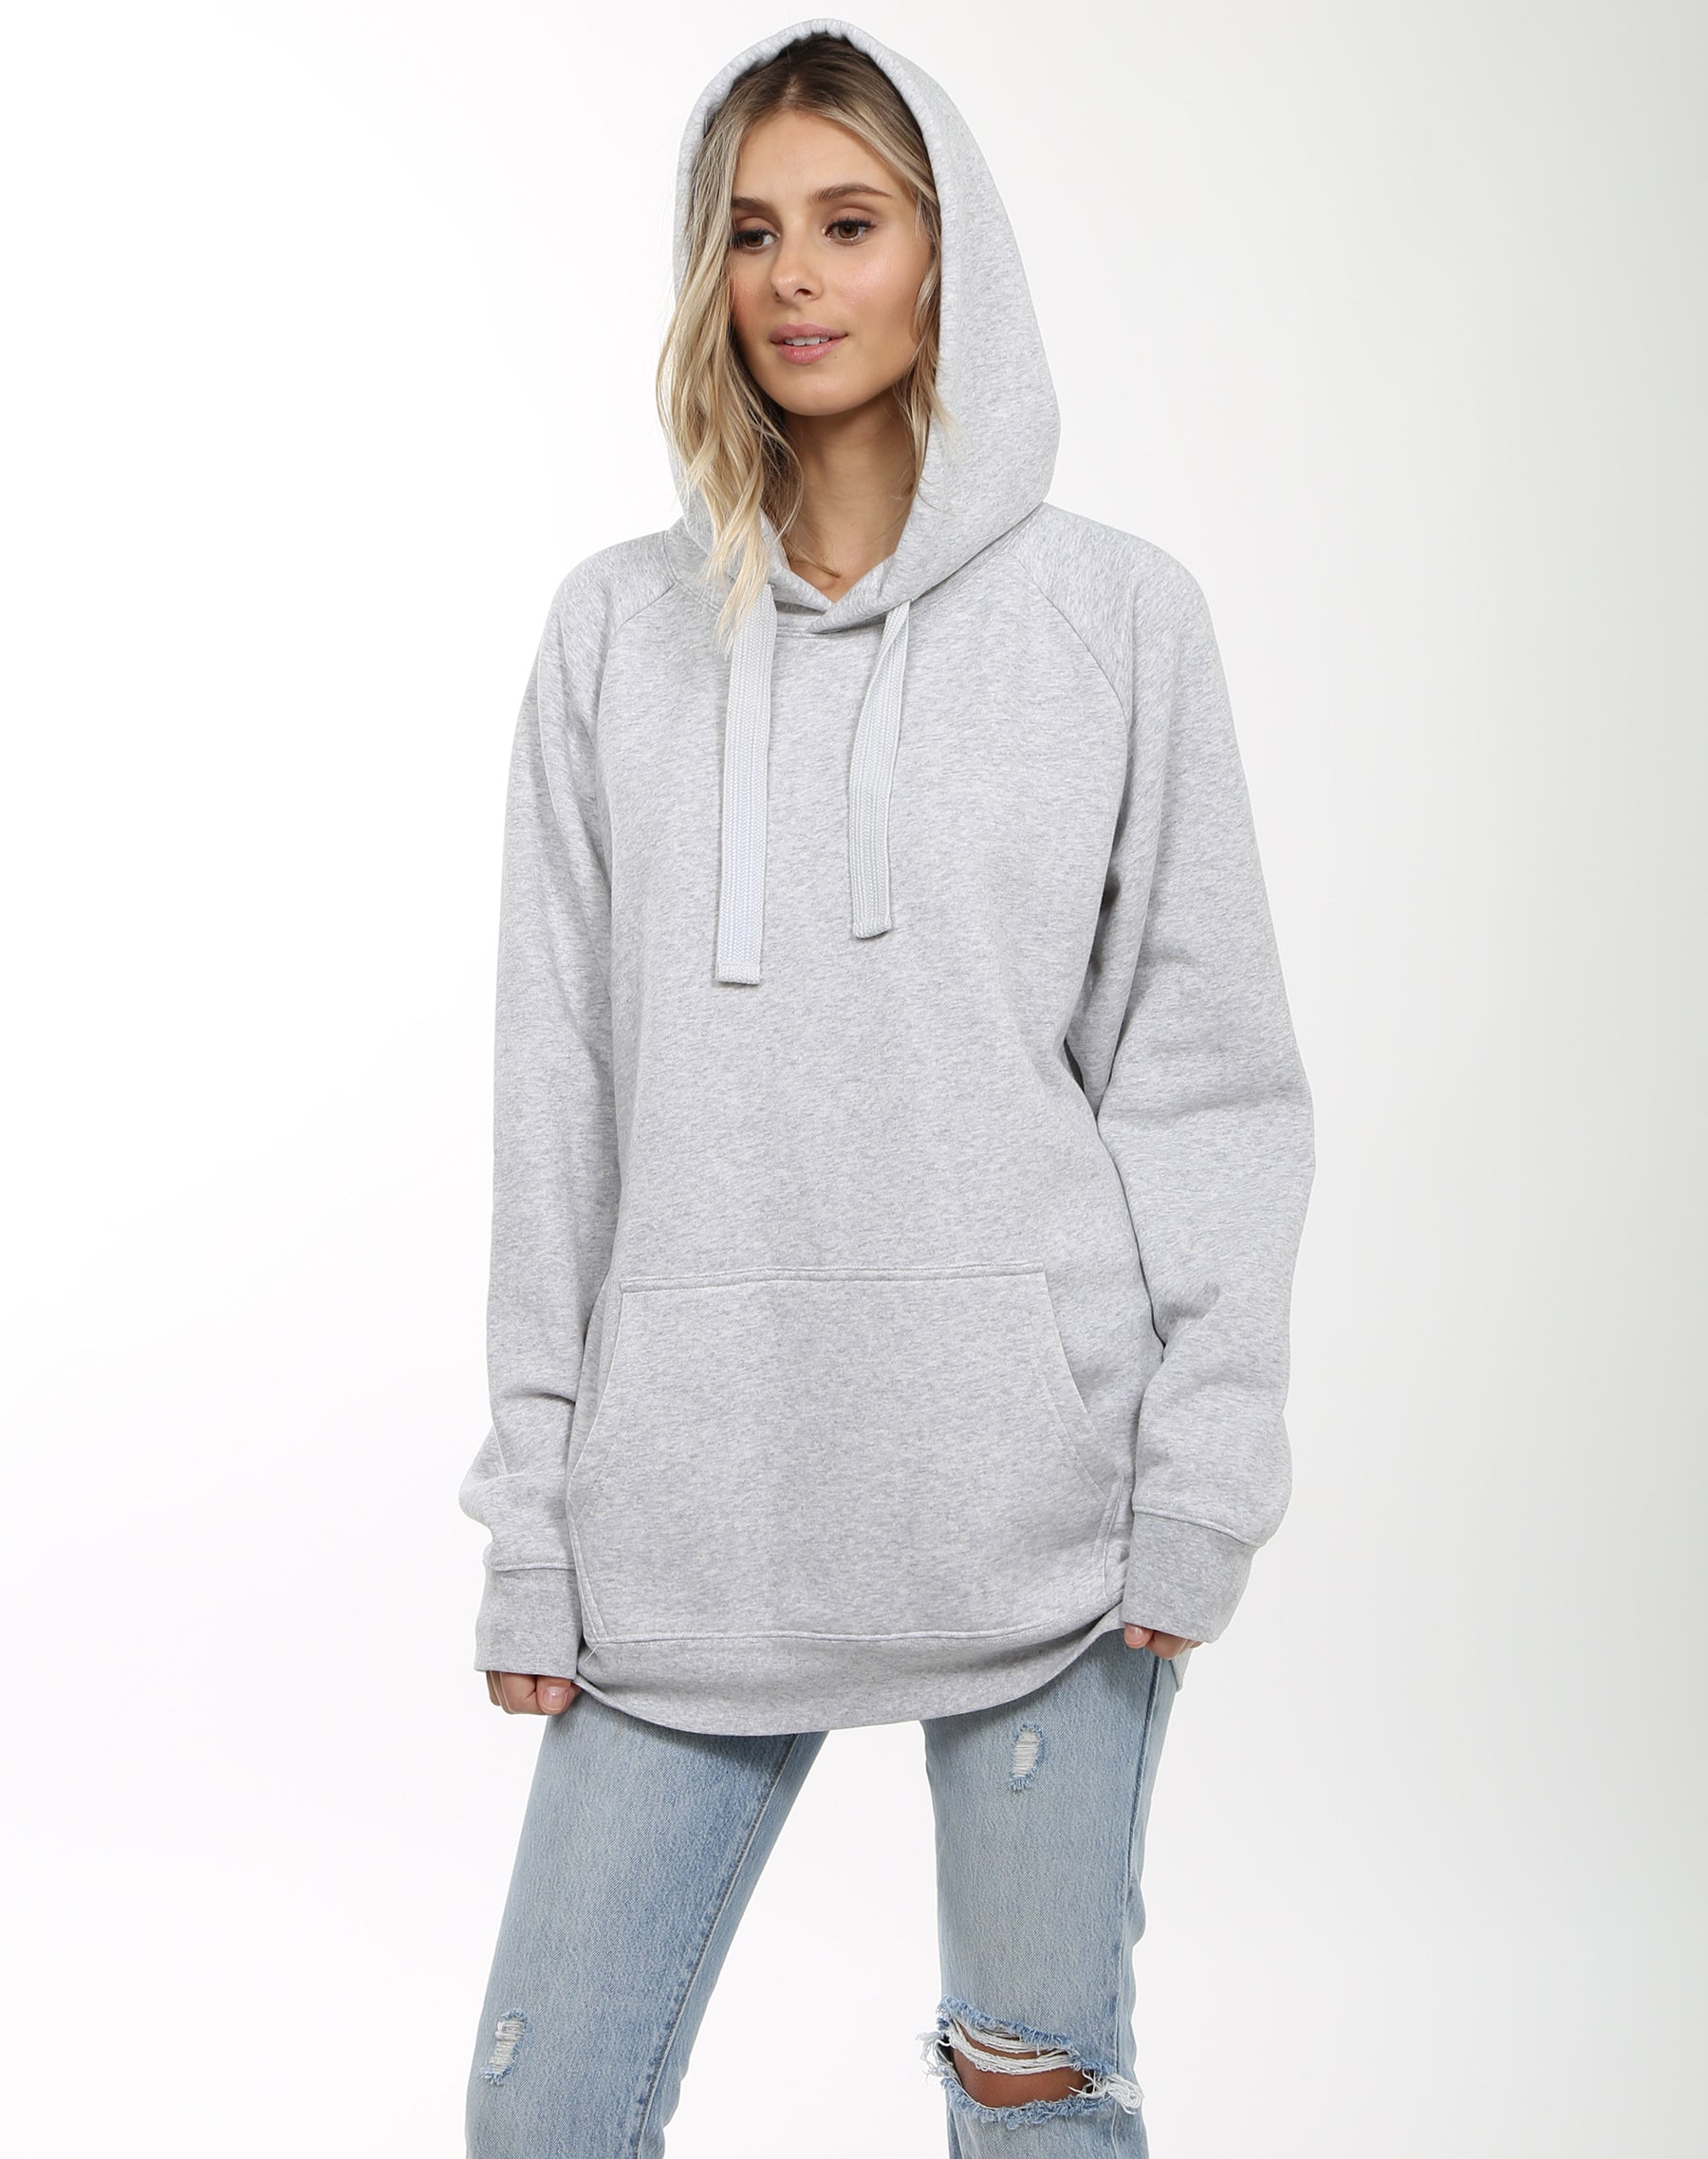 Photo 2 of the Babes Supporting Babes big sister hoodie in pebble grey by Brunette the Label.